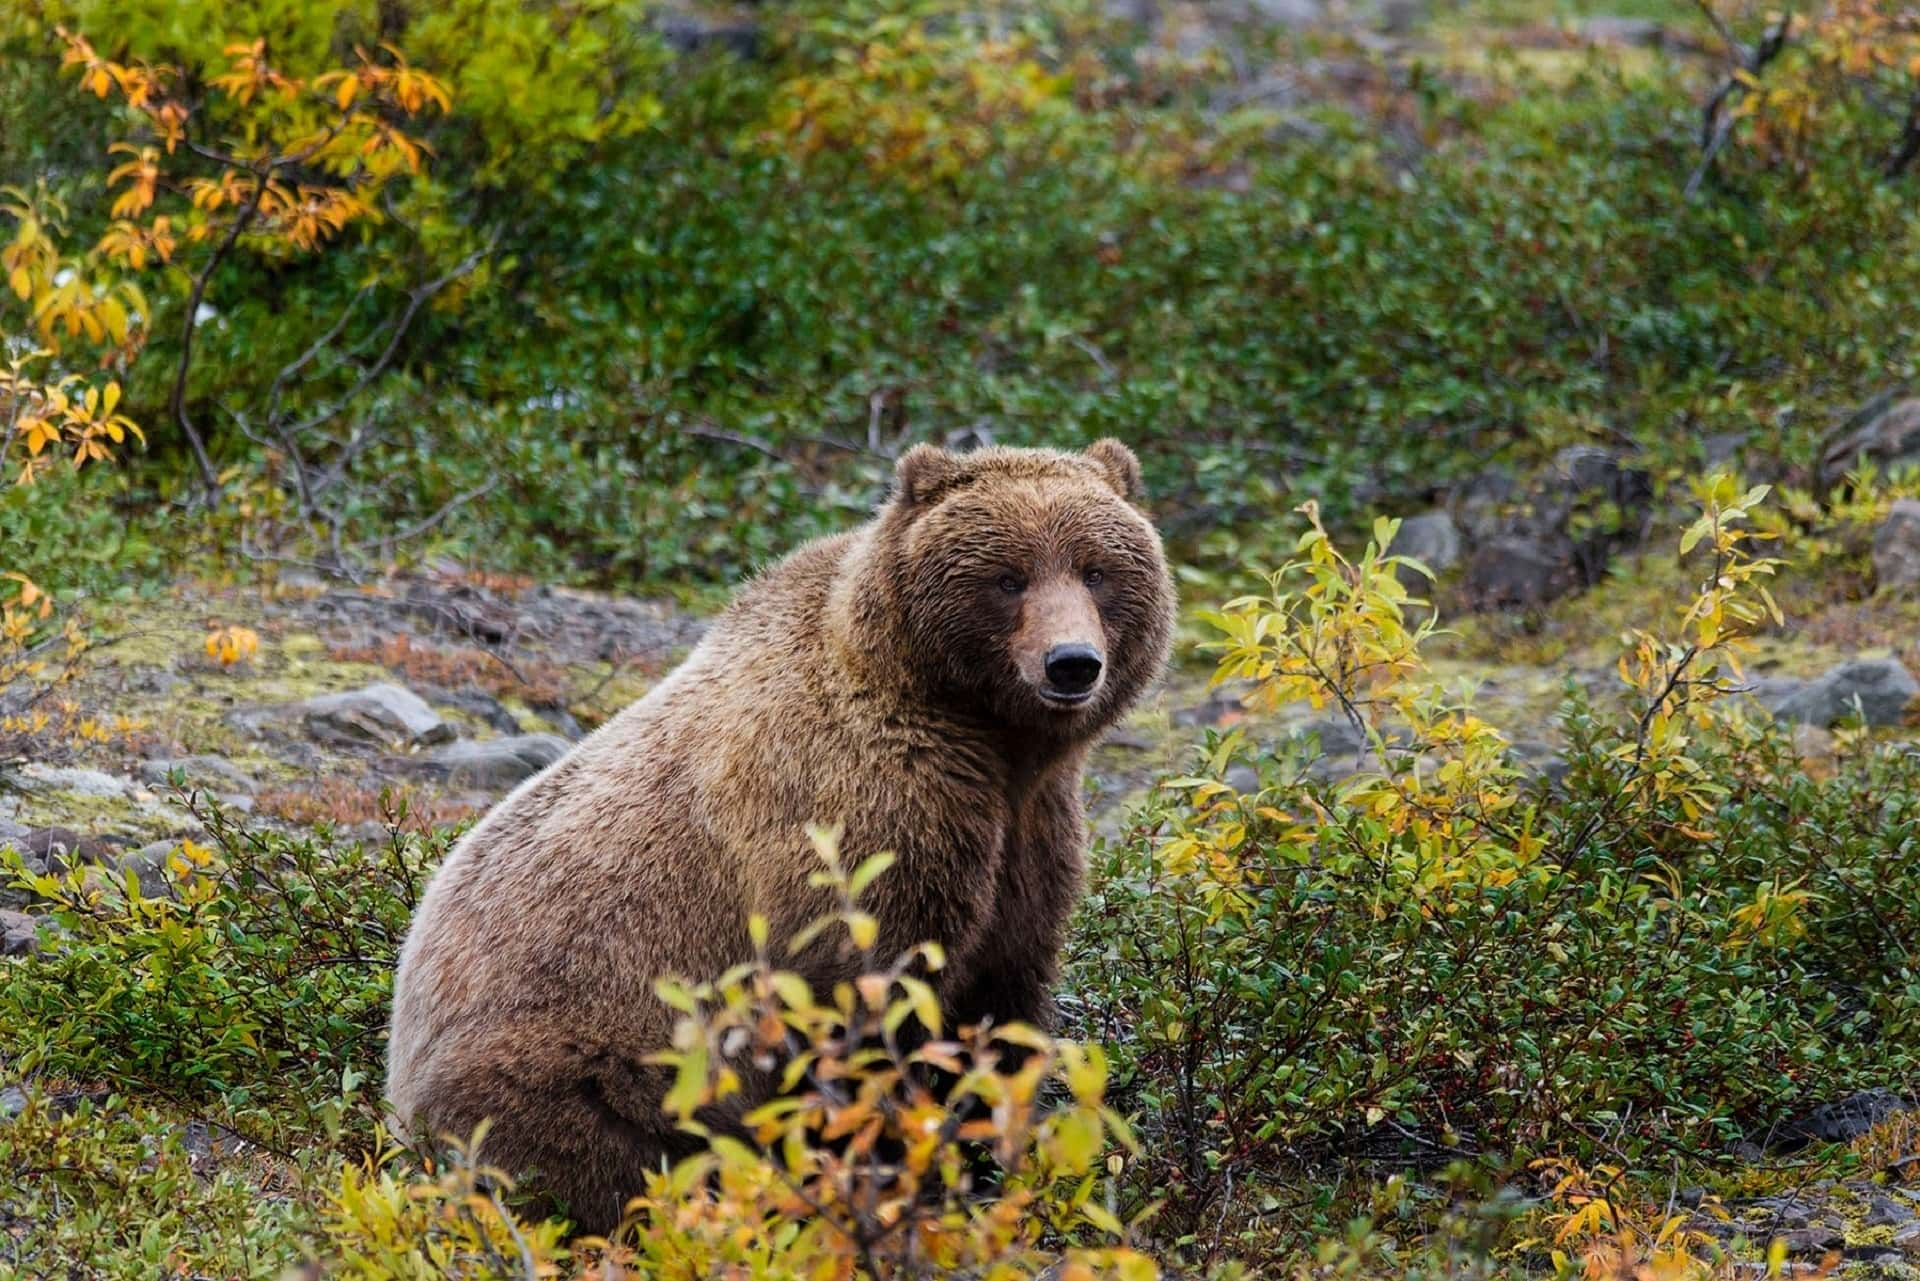 Prevent dangerous wildlife encounters with these wildlife safety tips including what to do if you see a bear, snake, mountain lion, or moose.